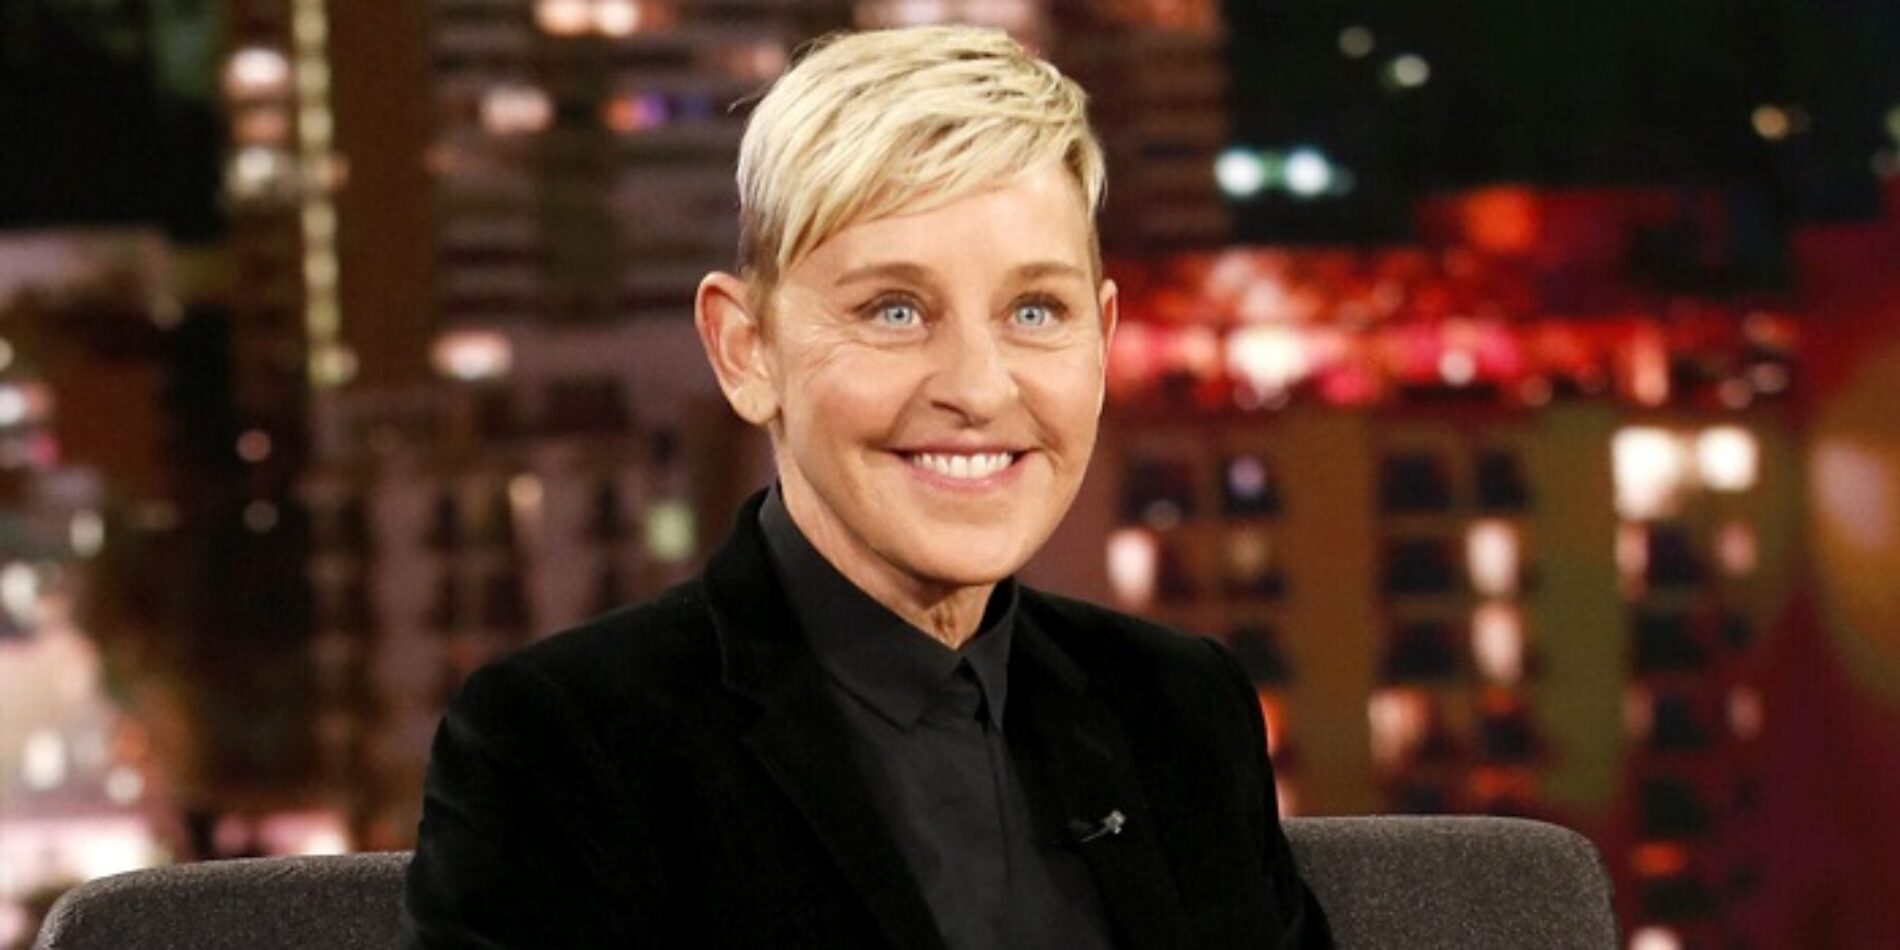 Opinion: Ellen's Disappointing Transformation From LGBT Hero to Hollywood Villain